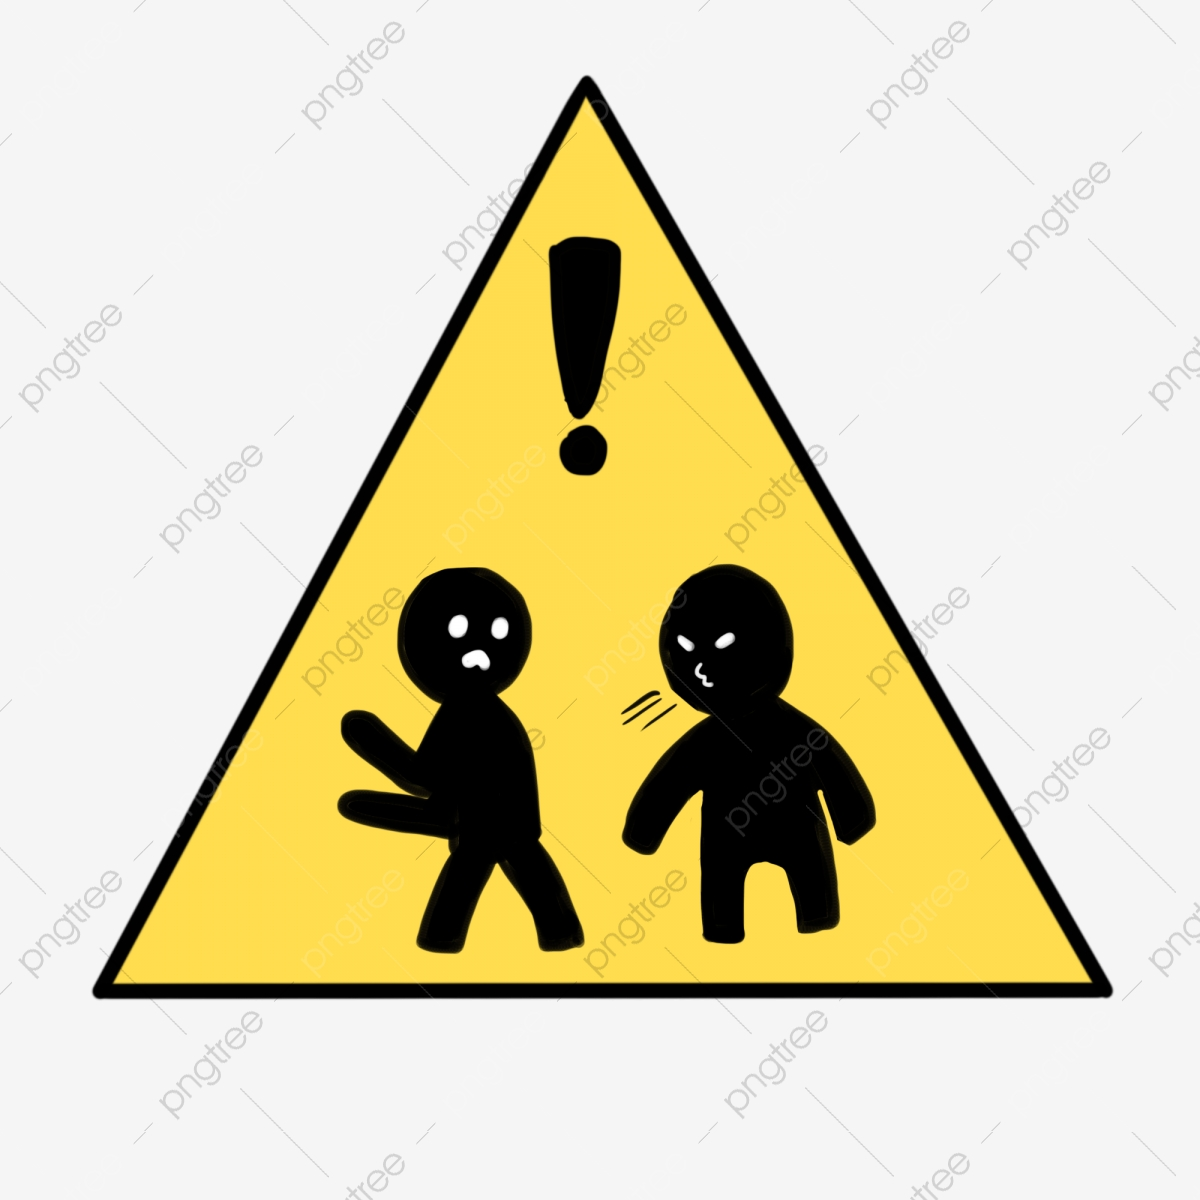 Attention To Infectious Disease Prohibition Warning Illustration Attention Clipart Attention To Infectious Diseases Cartoon Illustrations Png Transparent Clipart Image And Psd File For Free Download